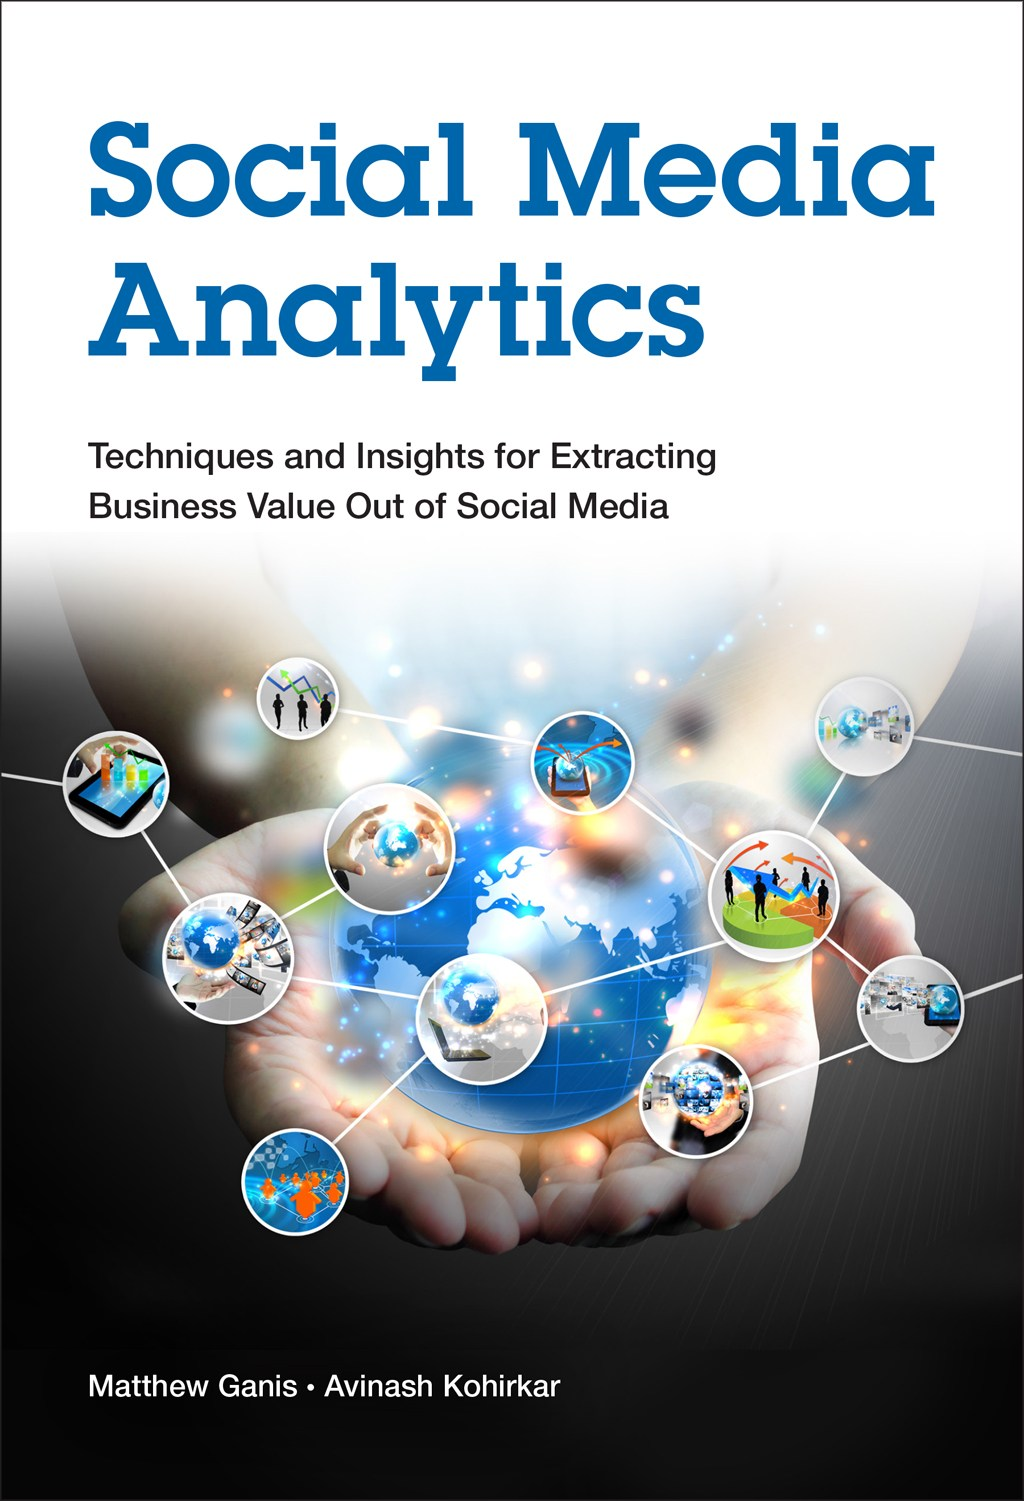 Social Media Analytics: Techniques and Insights for Extracting Business Value Out of Social Media